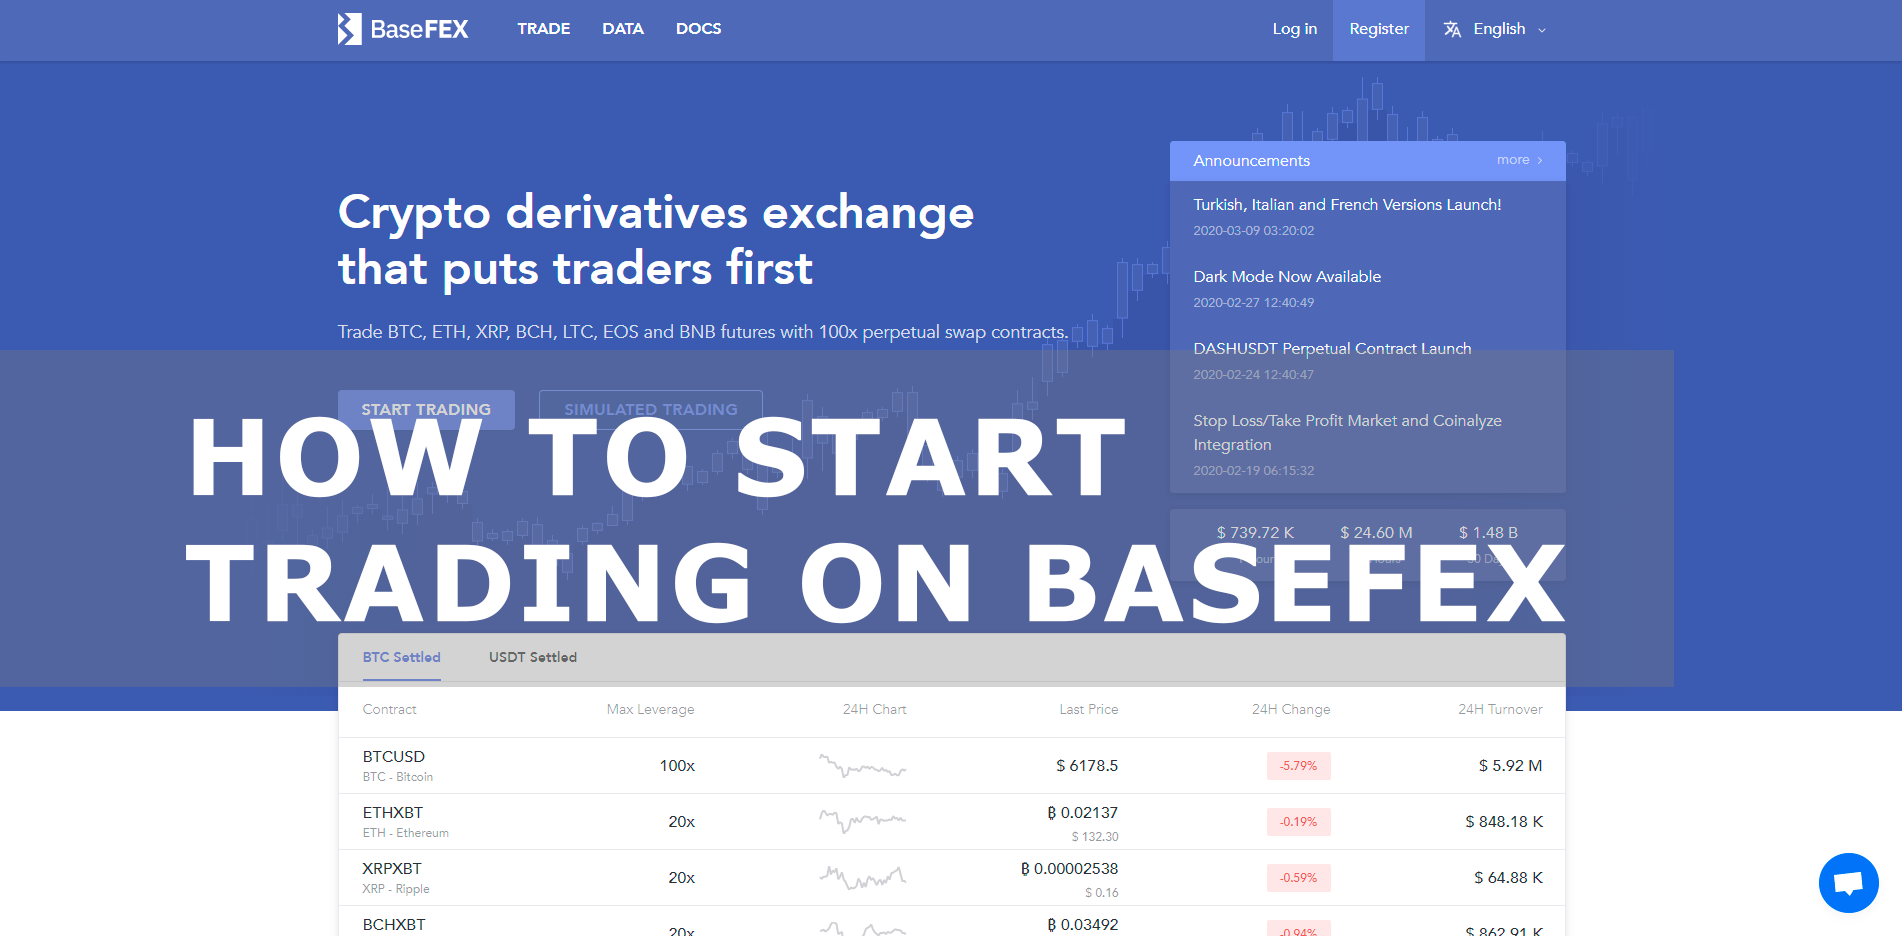 how-to-start-trading-on-basefex